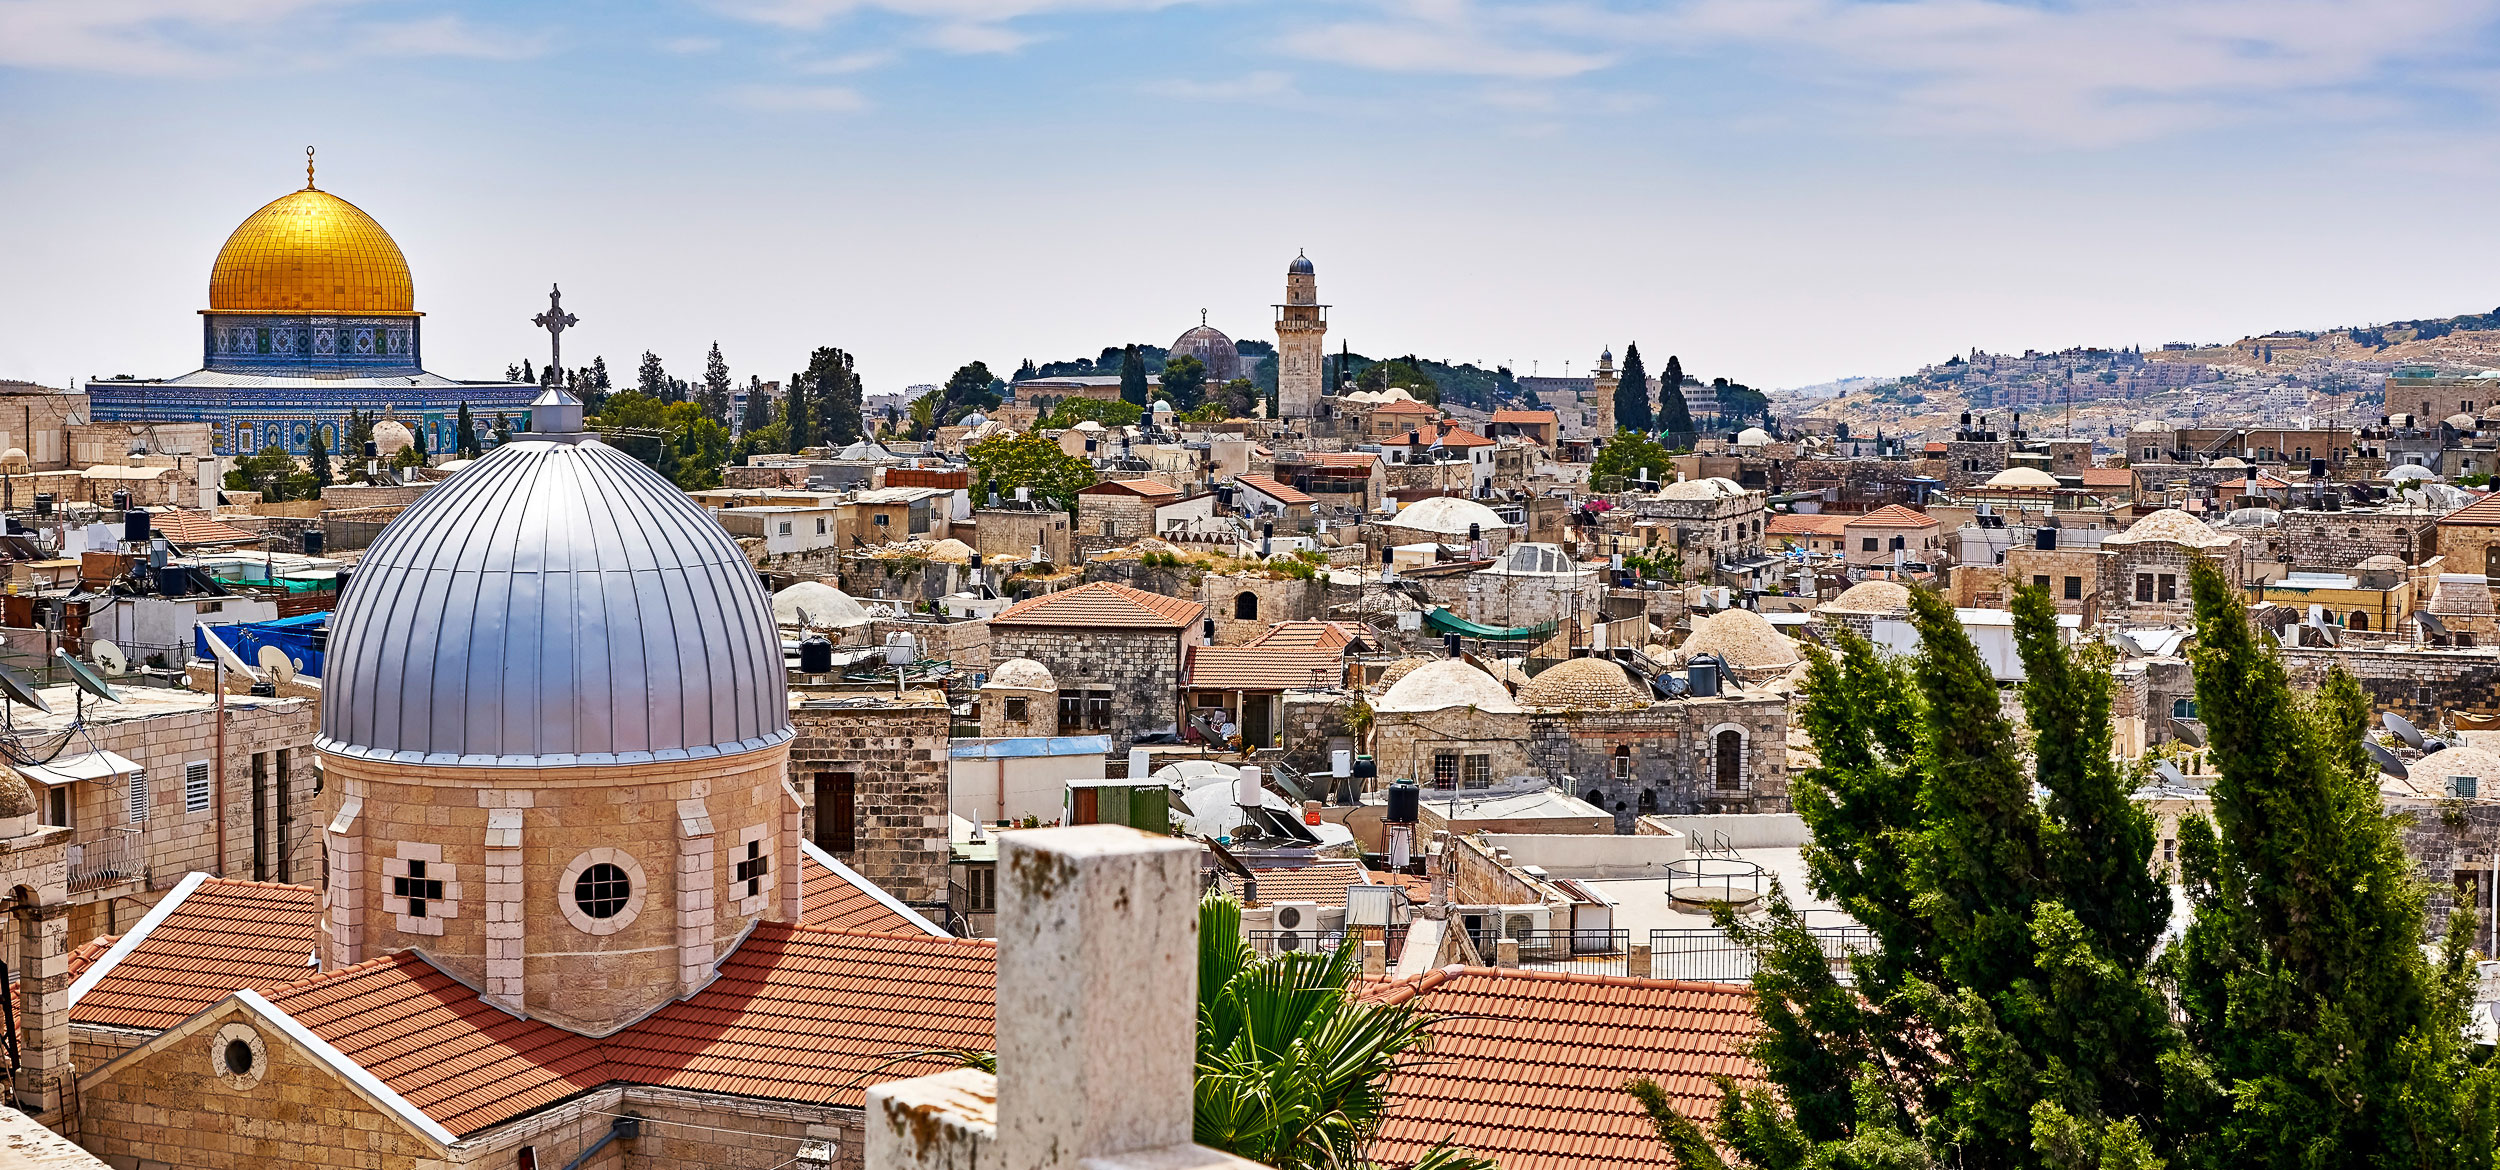 Aerial view of Jerusalem, Israel, with the golden Dome of the Rock on the Temple Mount in the background.